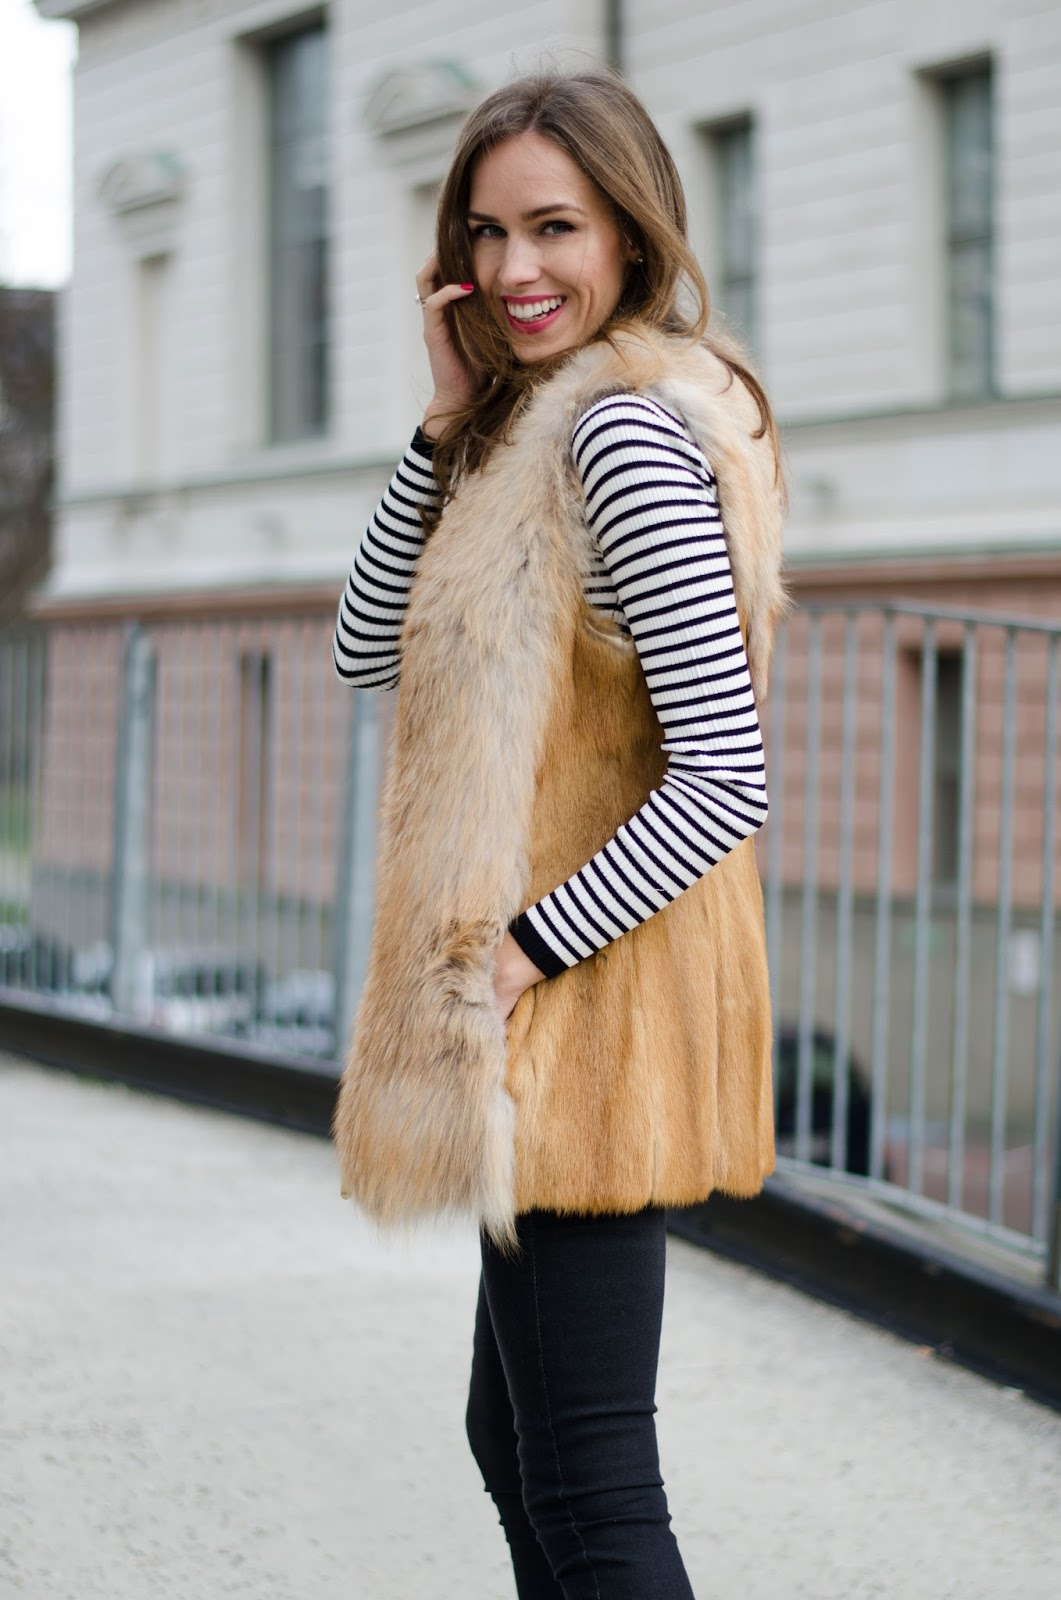 kristjaana mere black white striped sweater fox fur vest winter fashion